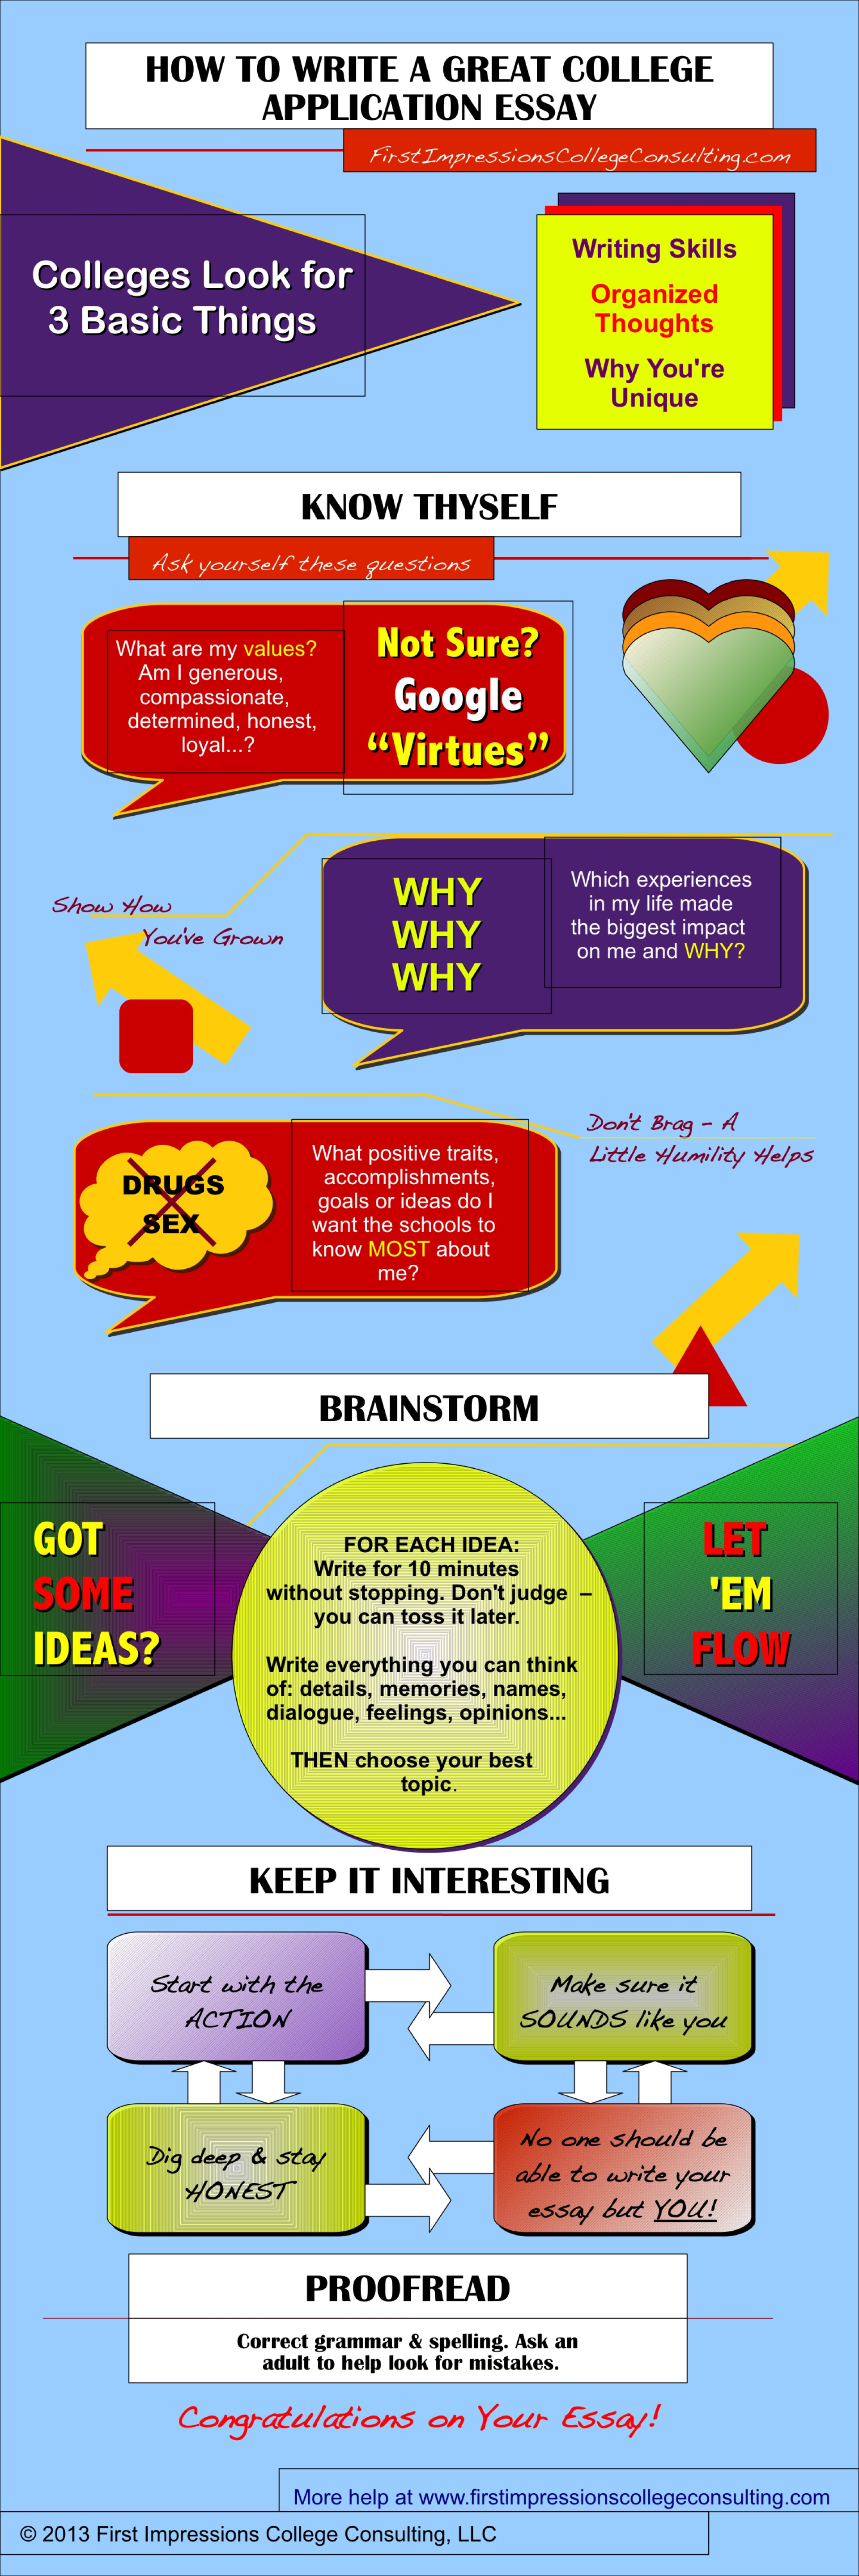 012 College Essay Consultants Write Great Infographic Final Fantastic Best 1920